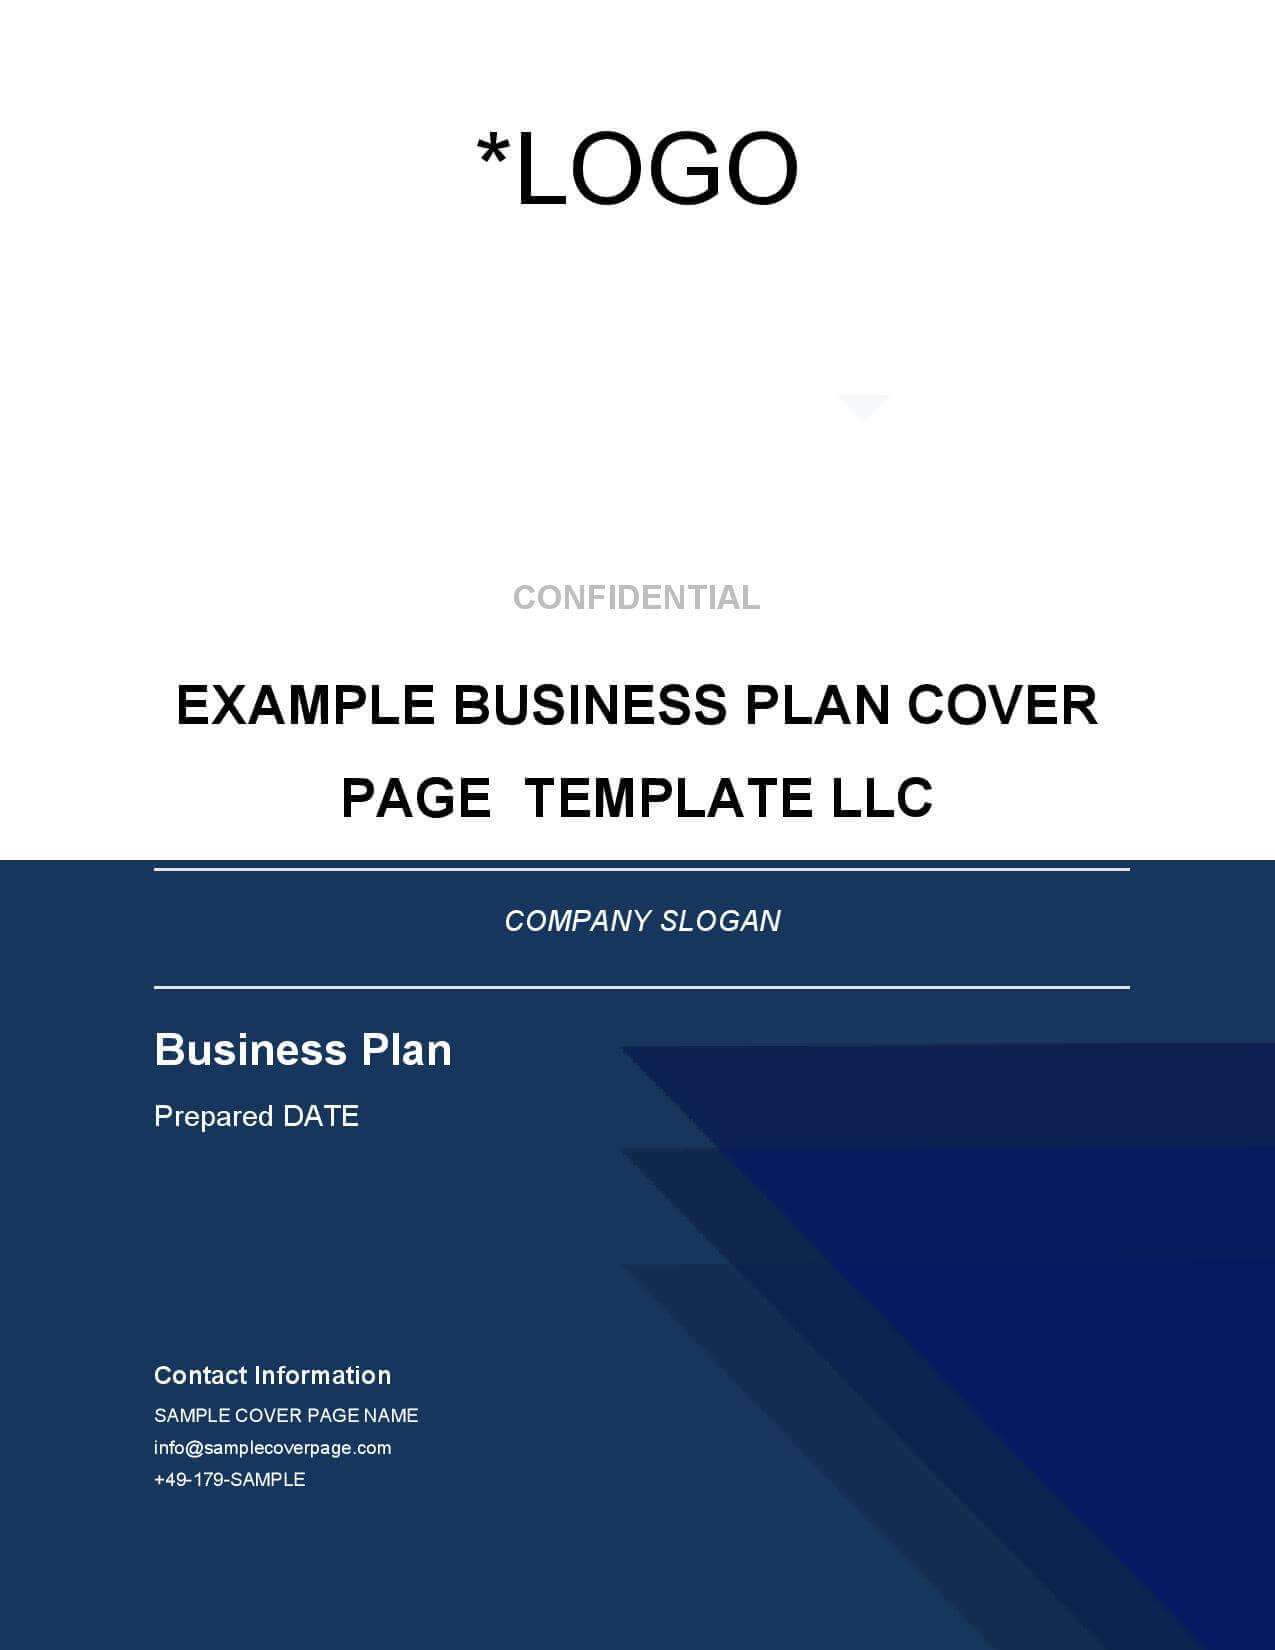 Business Plan Cover Page Template - Brainhive Business Planning With Business Plan Cover Page Template